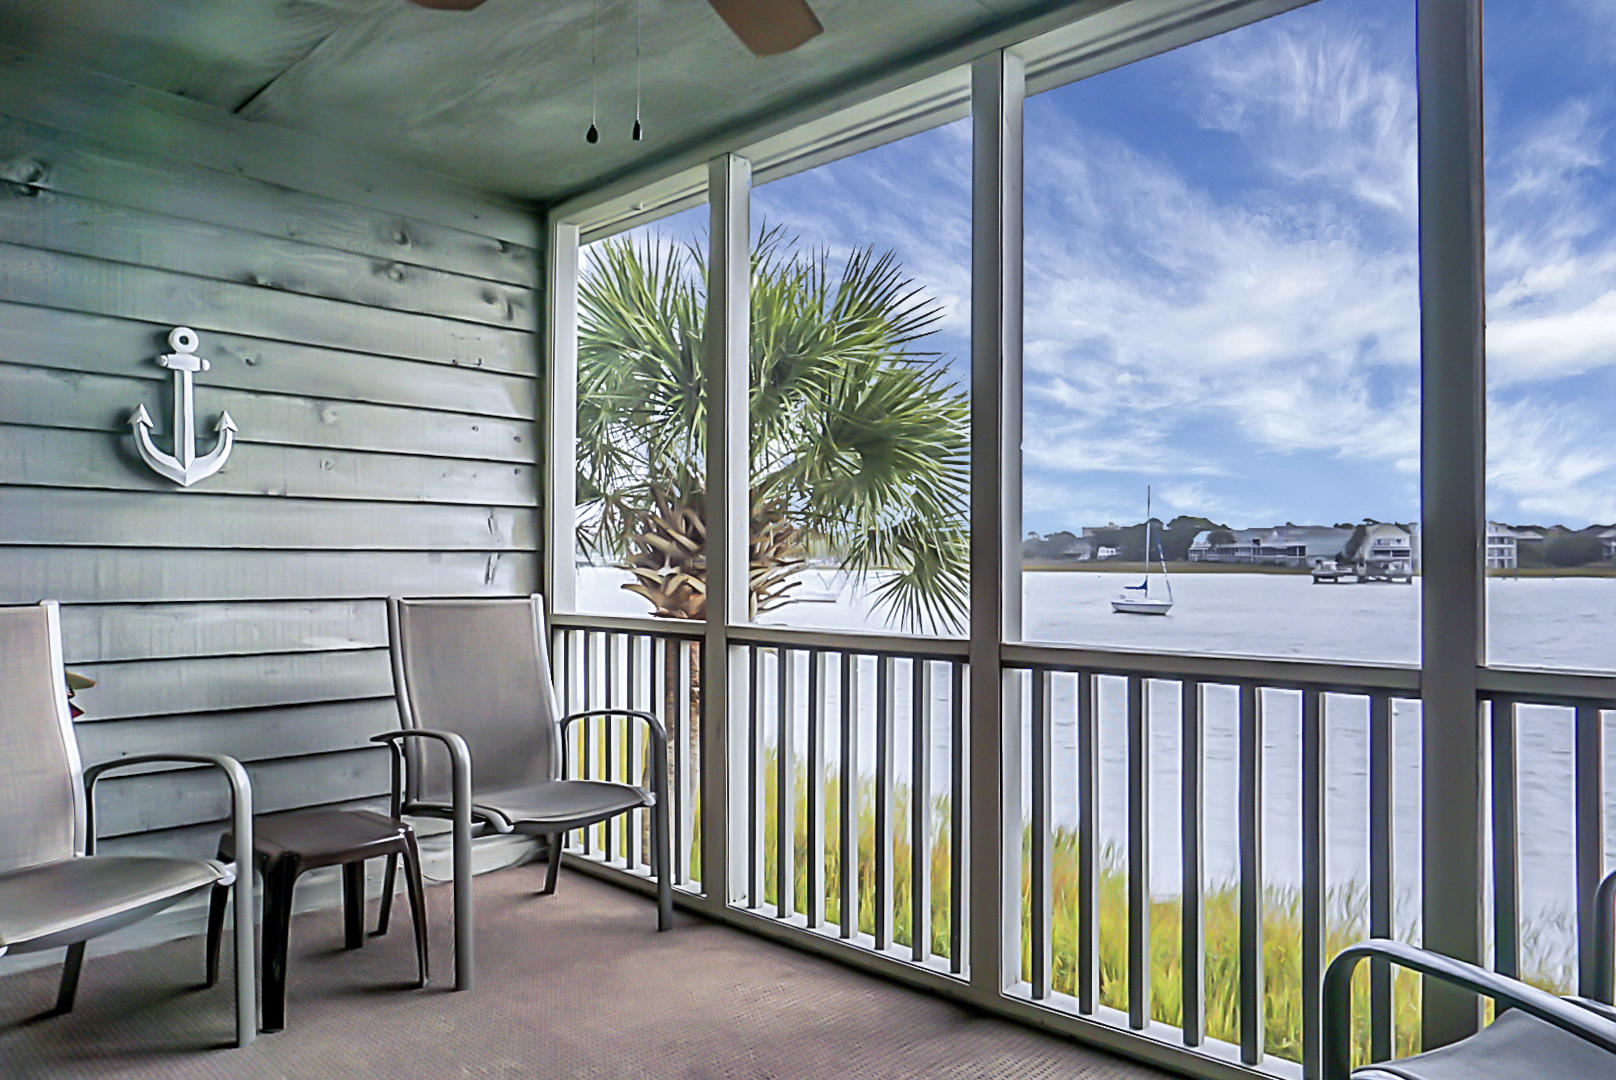 Mariners Cay Homes For Sale - 45 Mariners Cay, Folly Beach, SC - 27